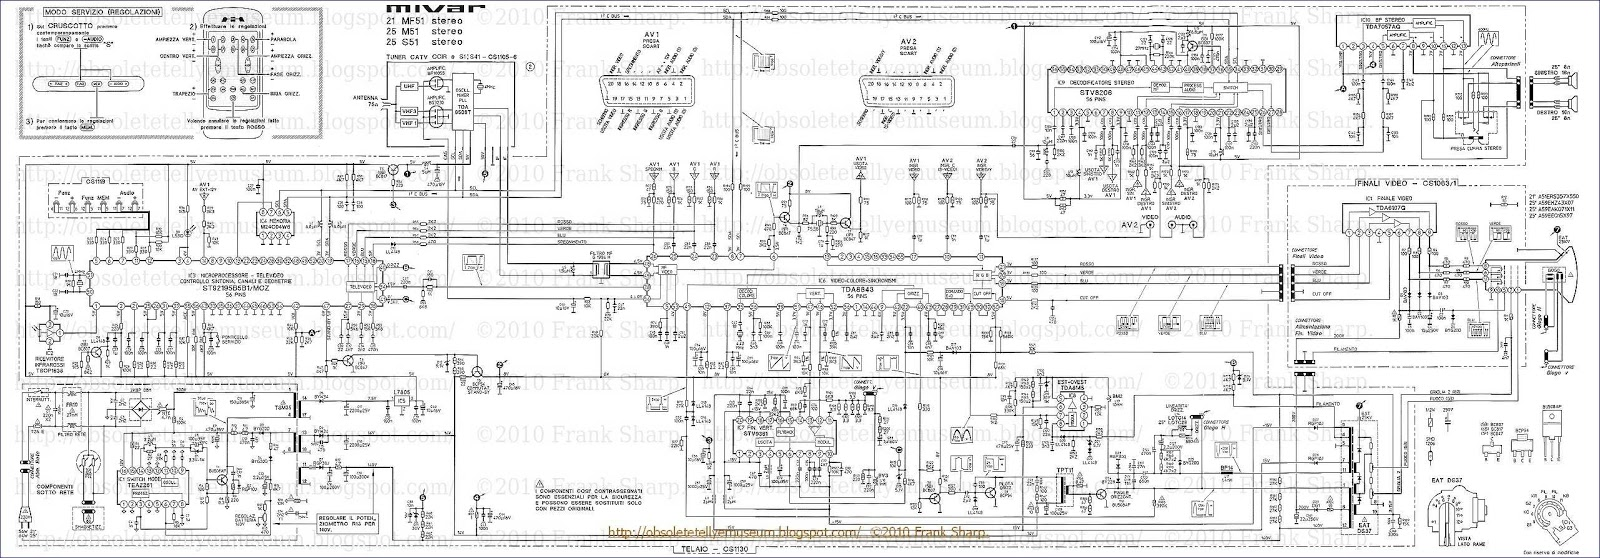 1969 vw bug wiring diagram file name bug 1969jpg